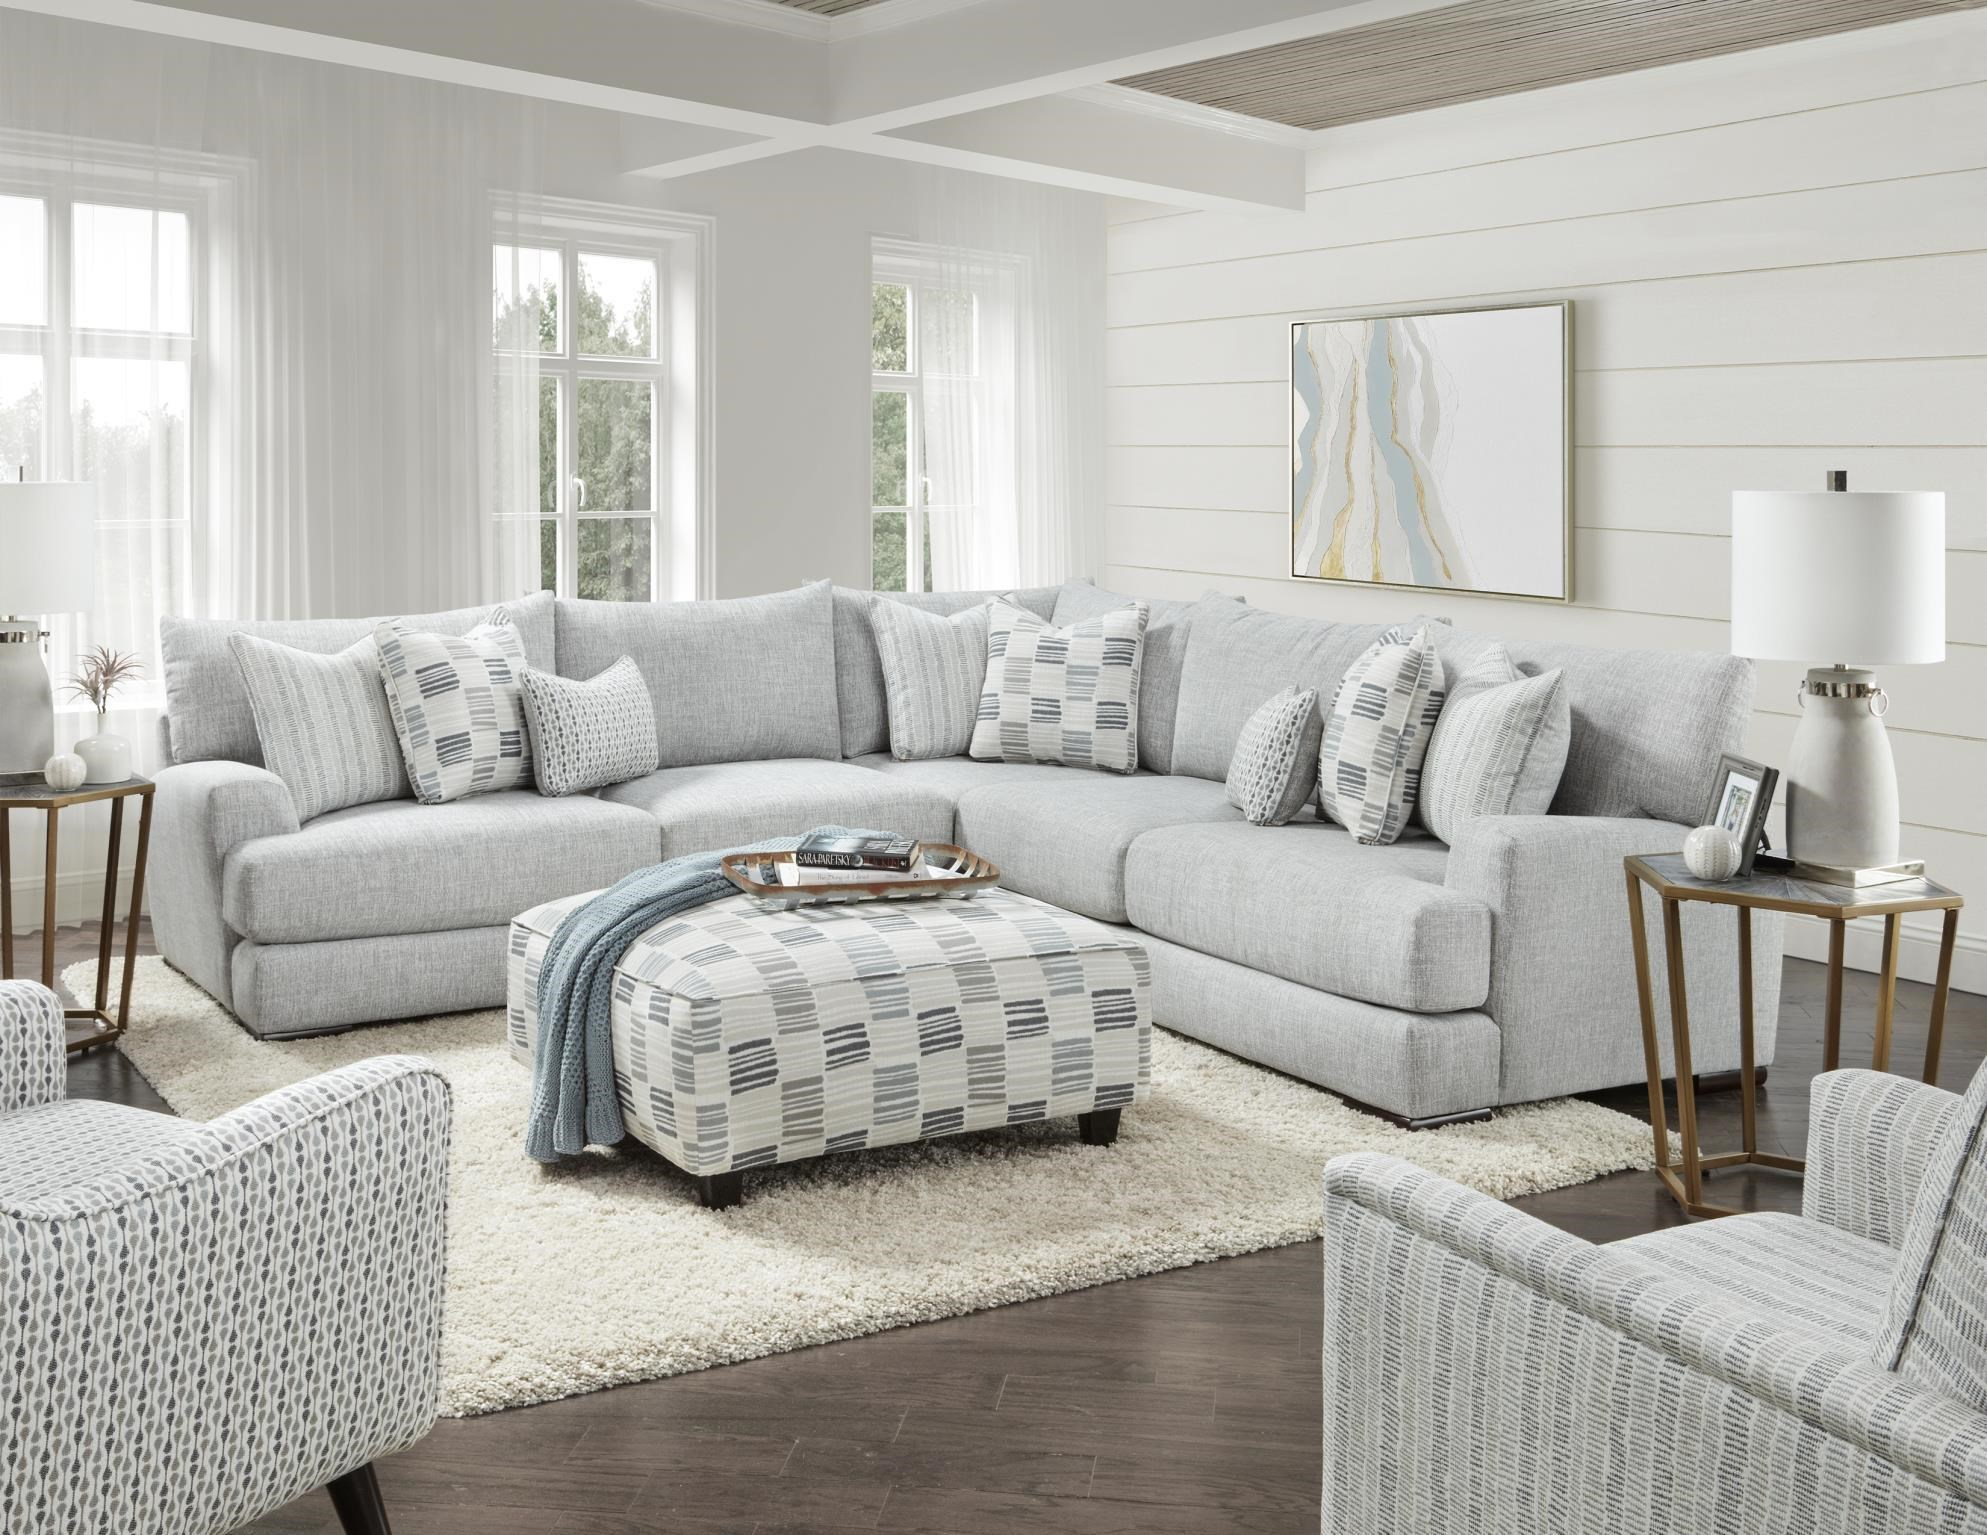 Entice Entice Sectional by Fusion Furniture at Stoney Creek Furniture